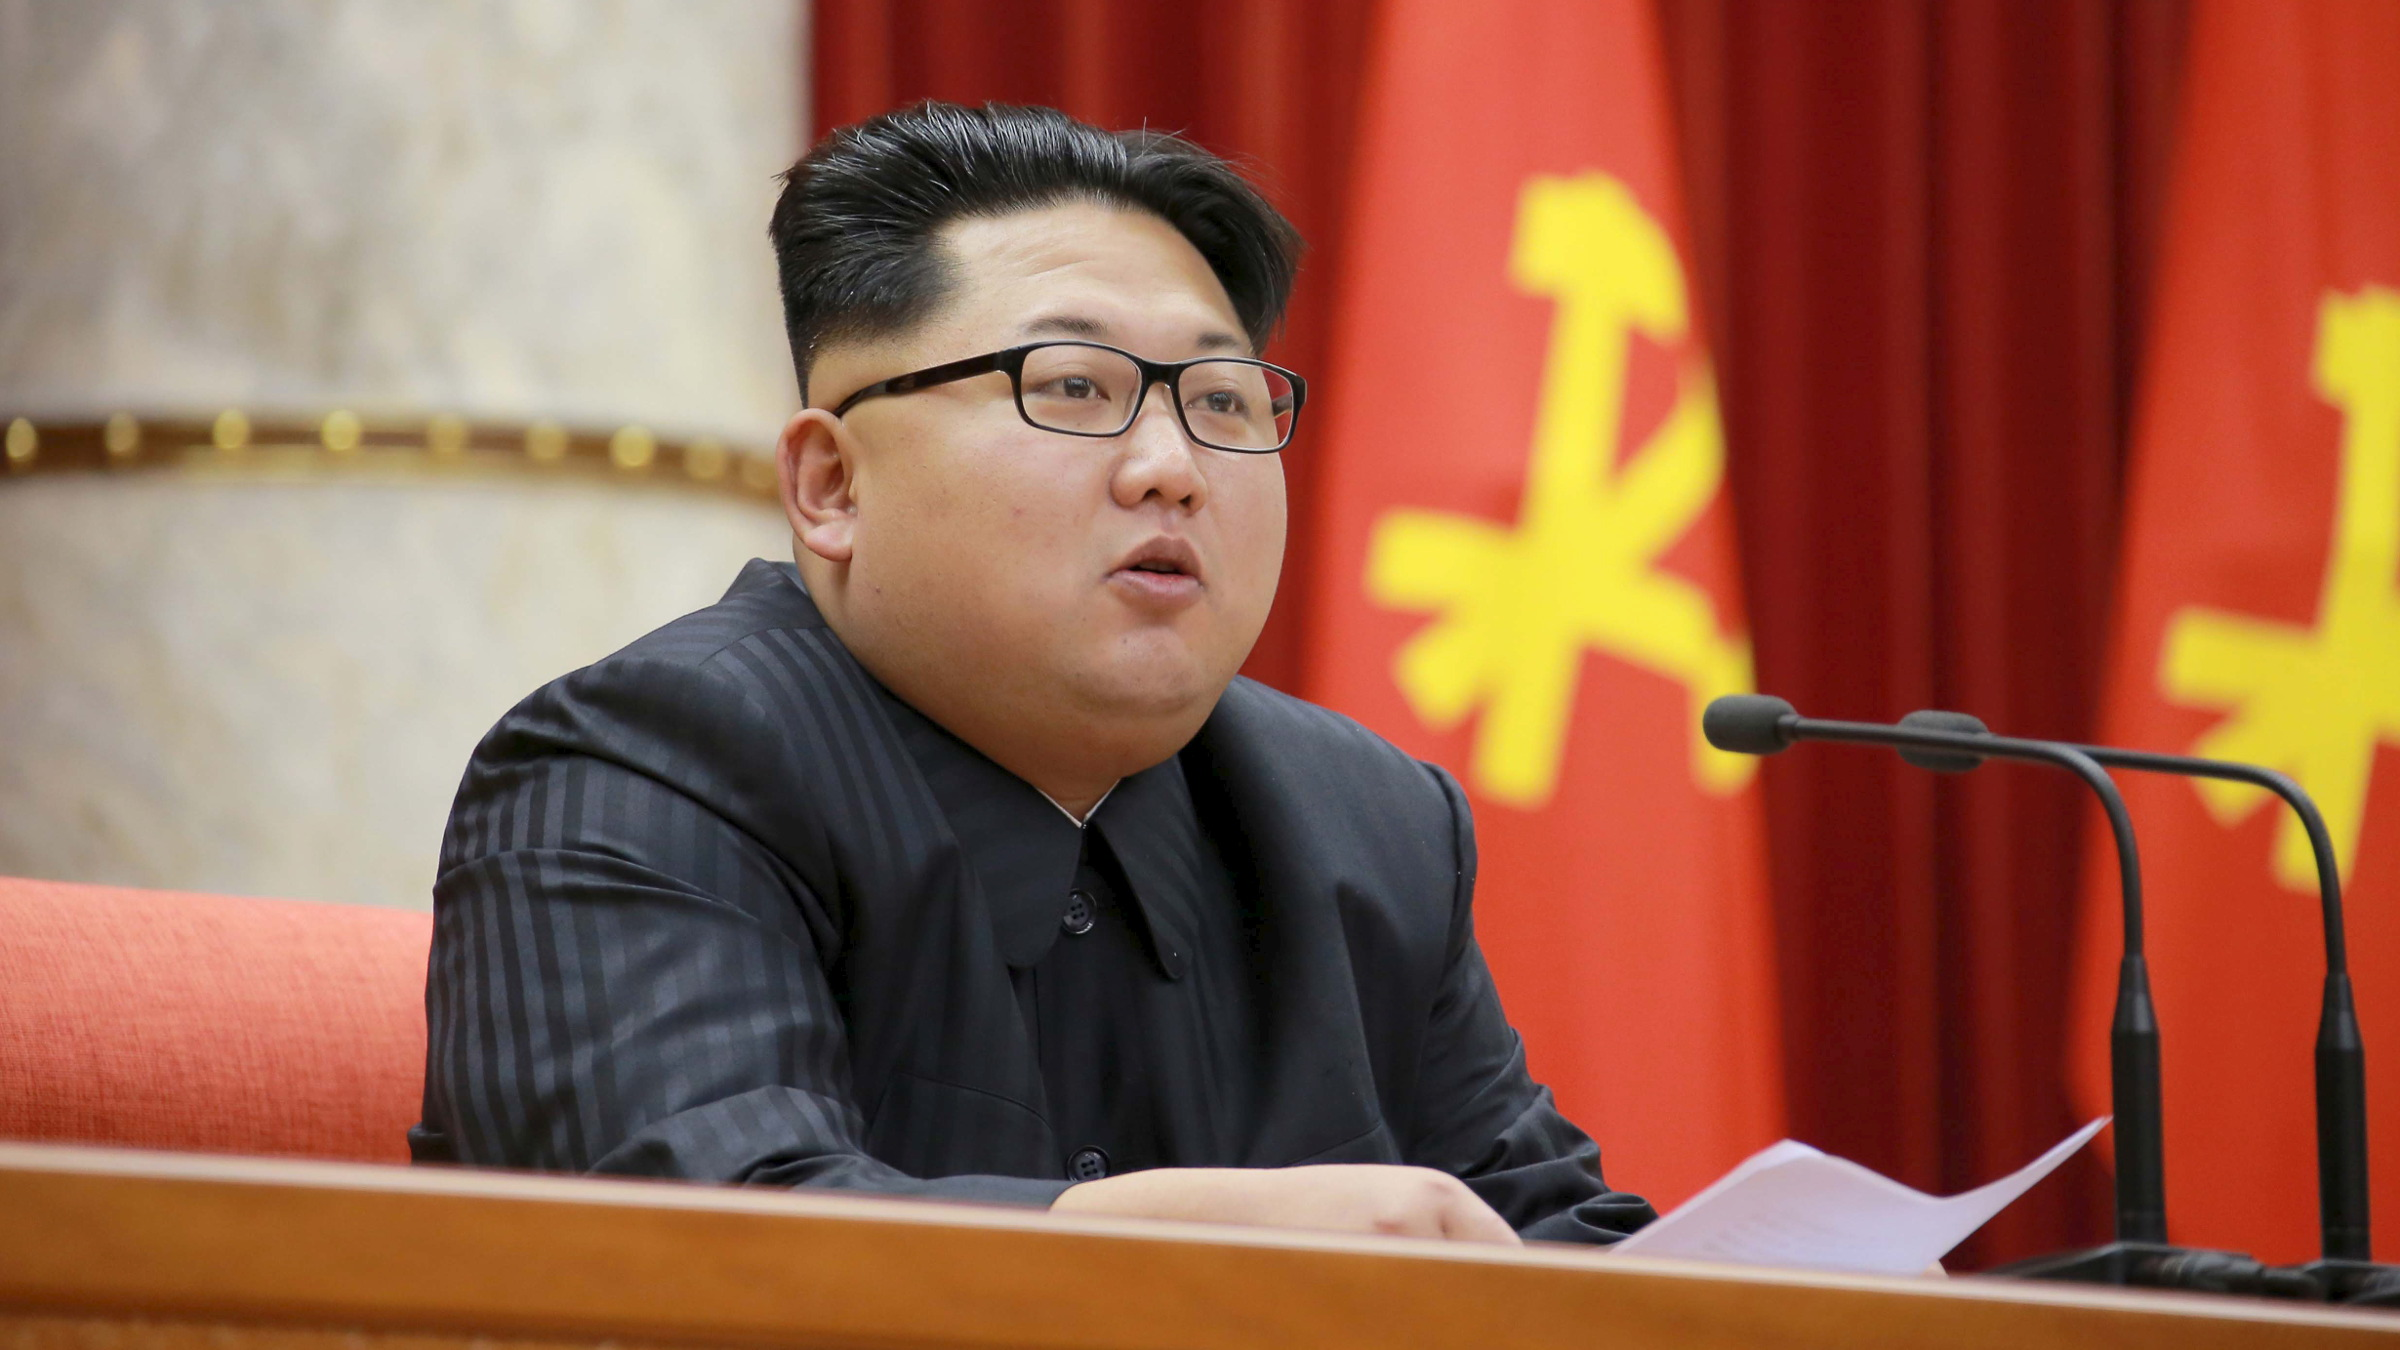 North Korean leader Kim Jong Un attends the 3rd Meeting of Activists in Fisheries under the Korean People's Army (KPA) in this undated photo released by North Korea's Korean Central News Agency (KCNA) in Pyongyang December 29, 2015.